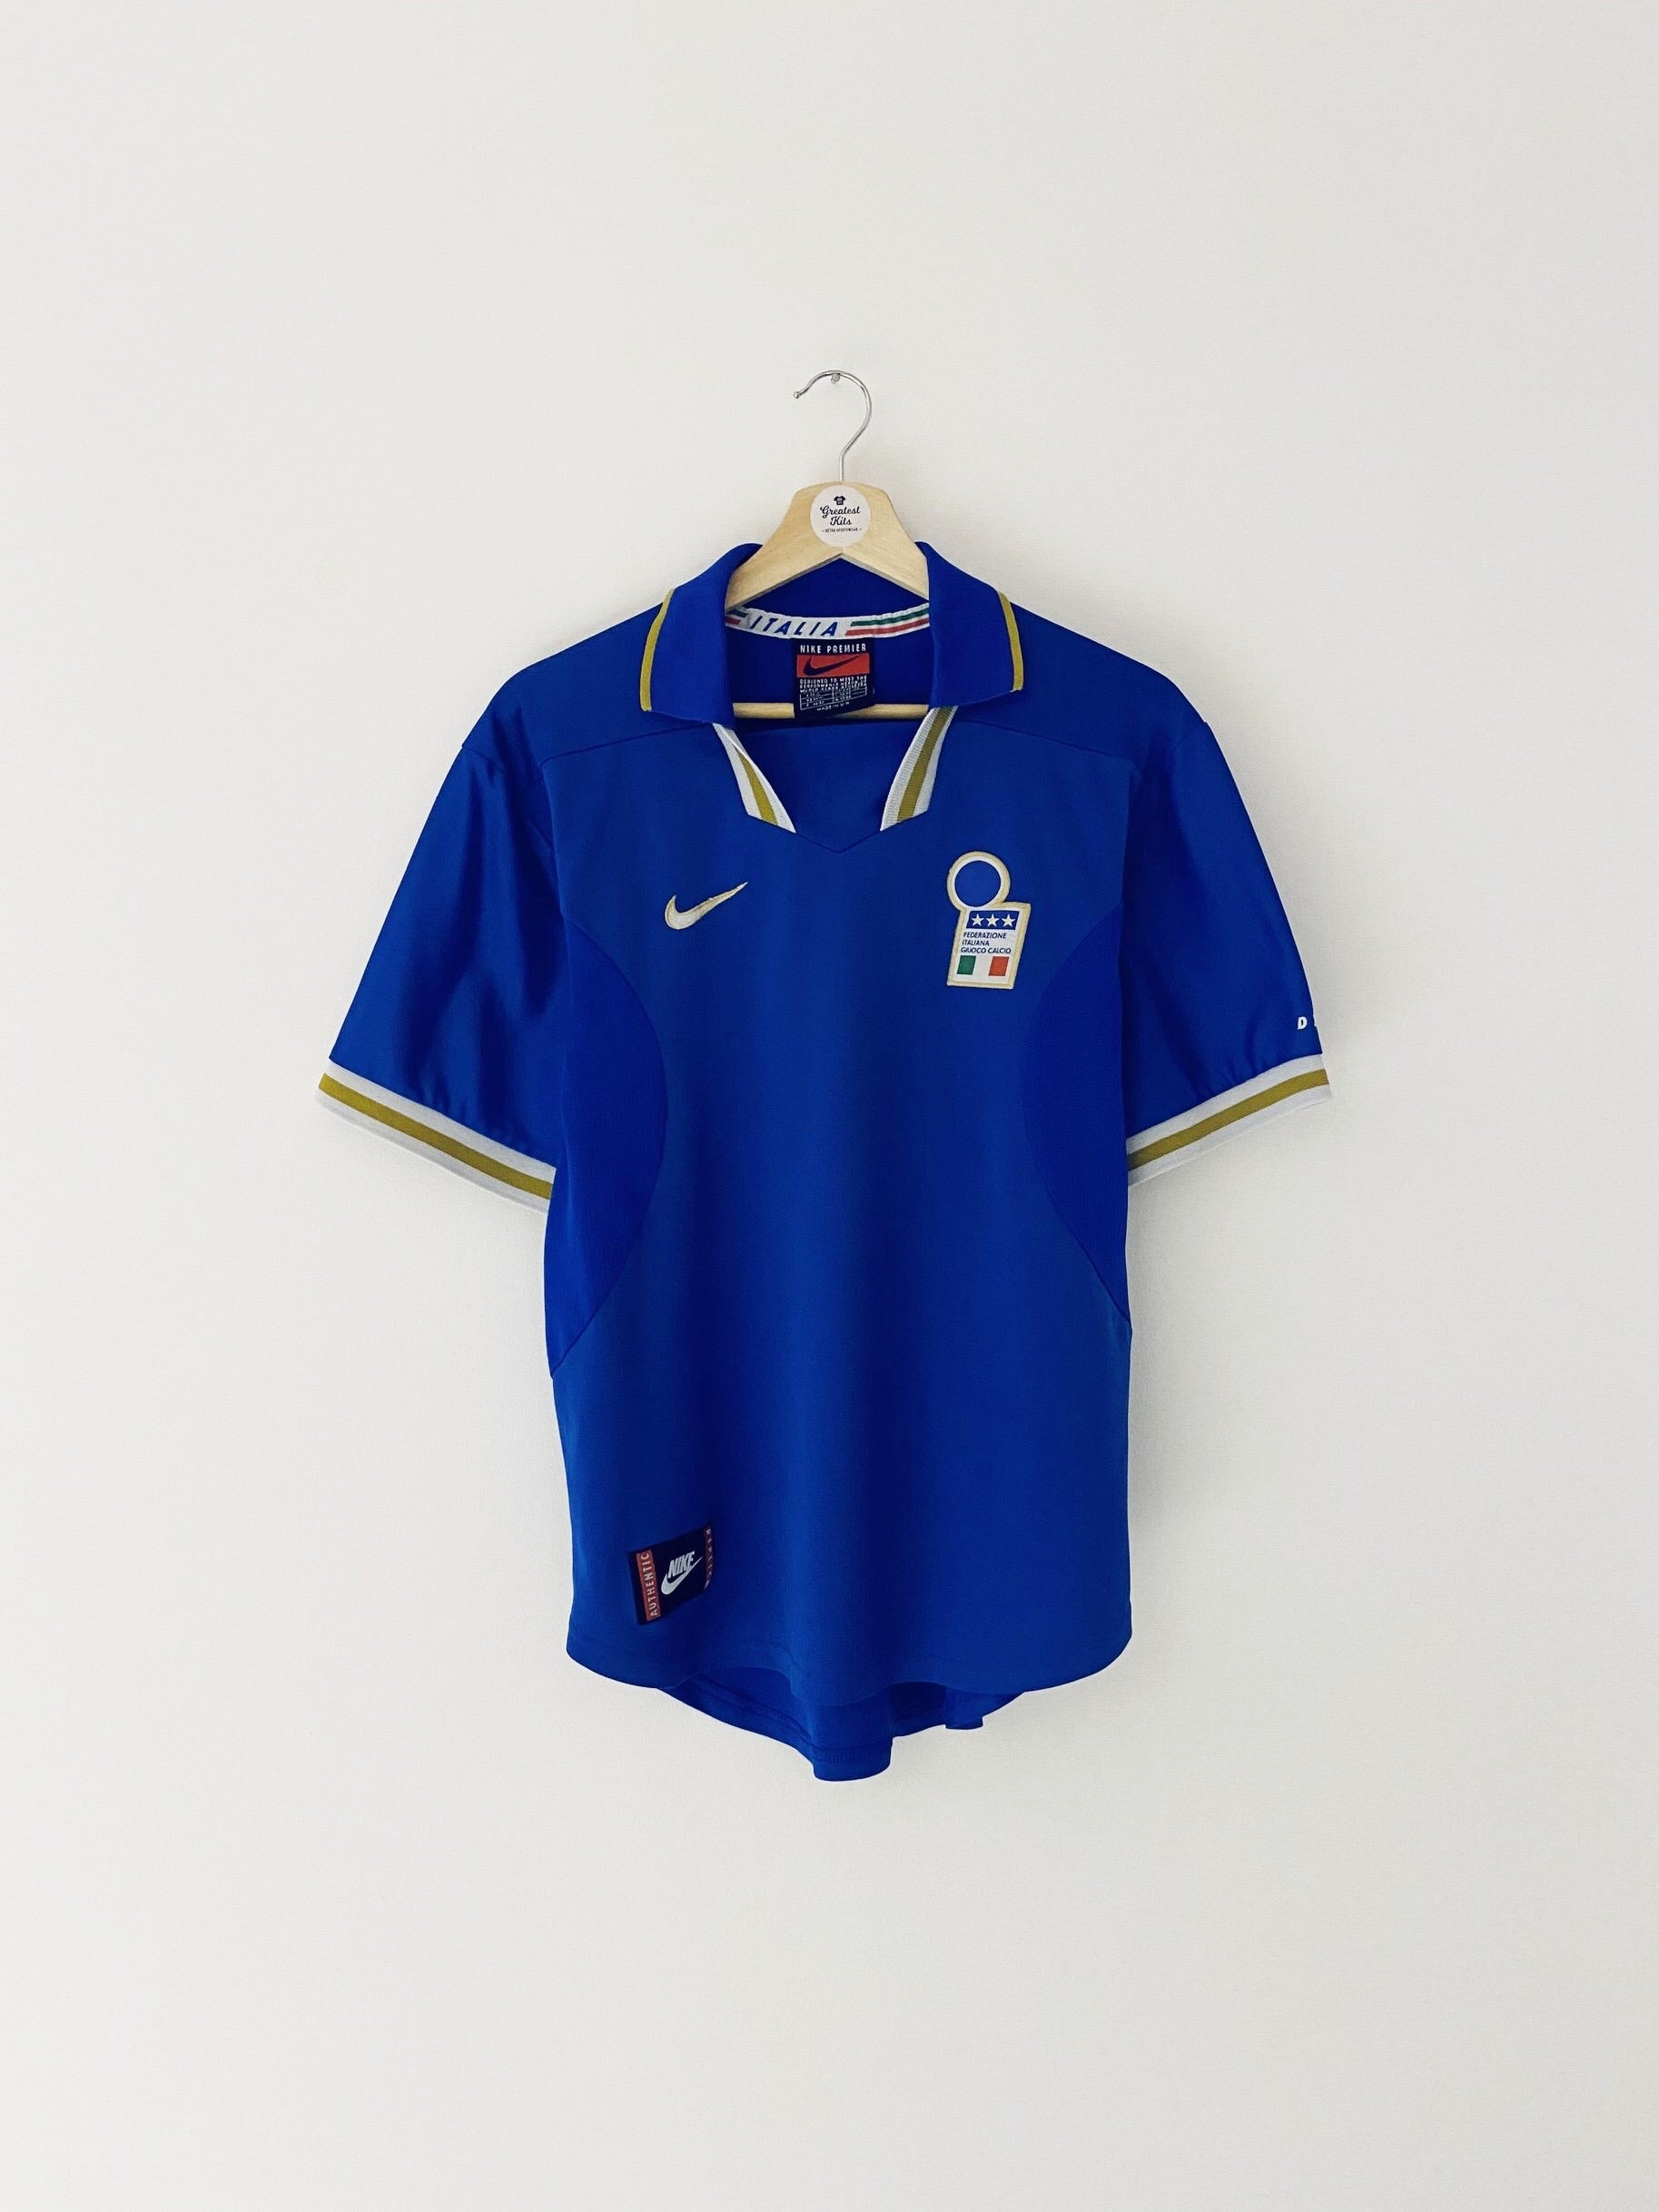 1996/97 Italy Home Shirt (M) 8/10